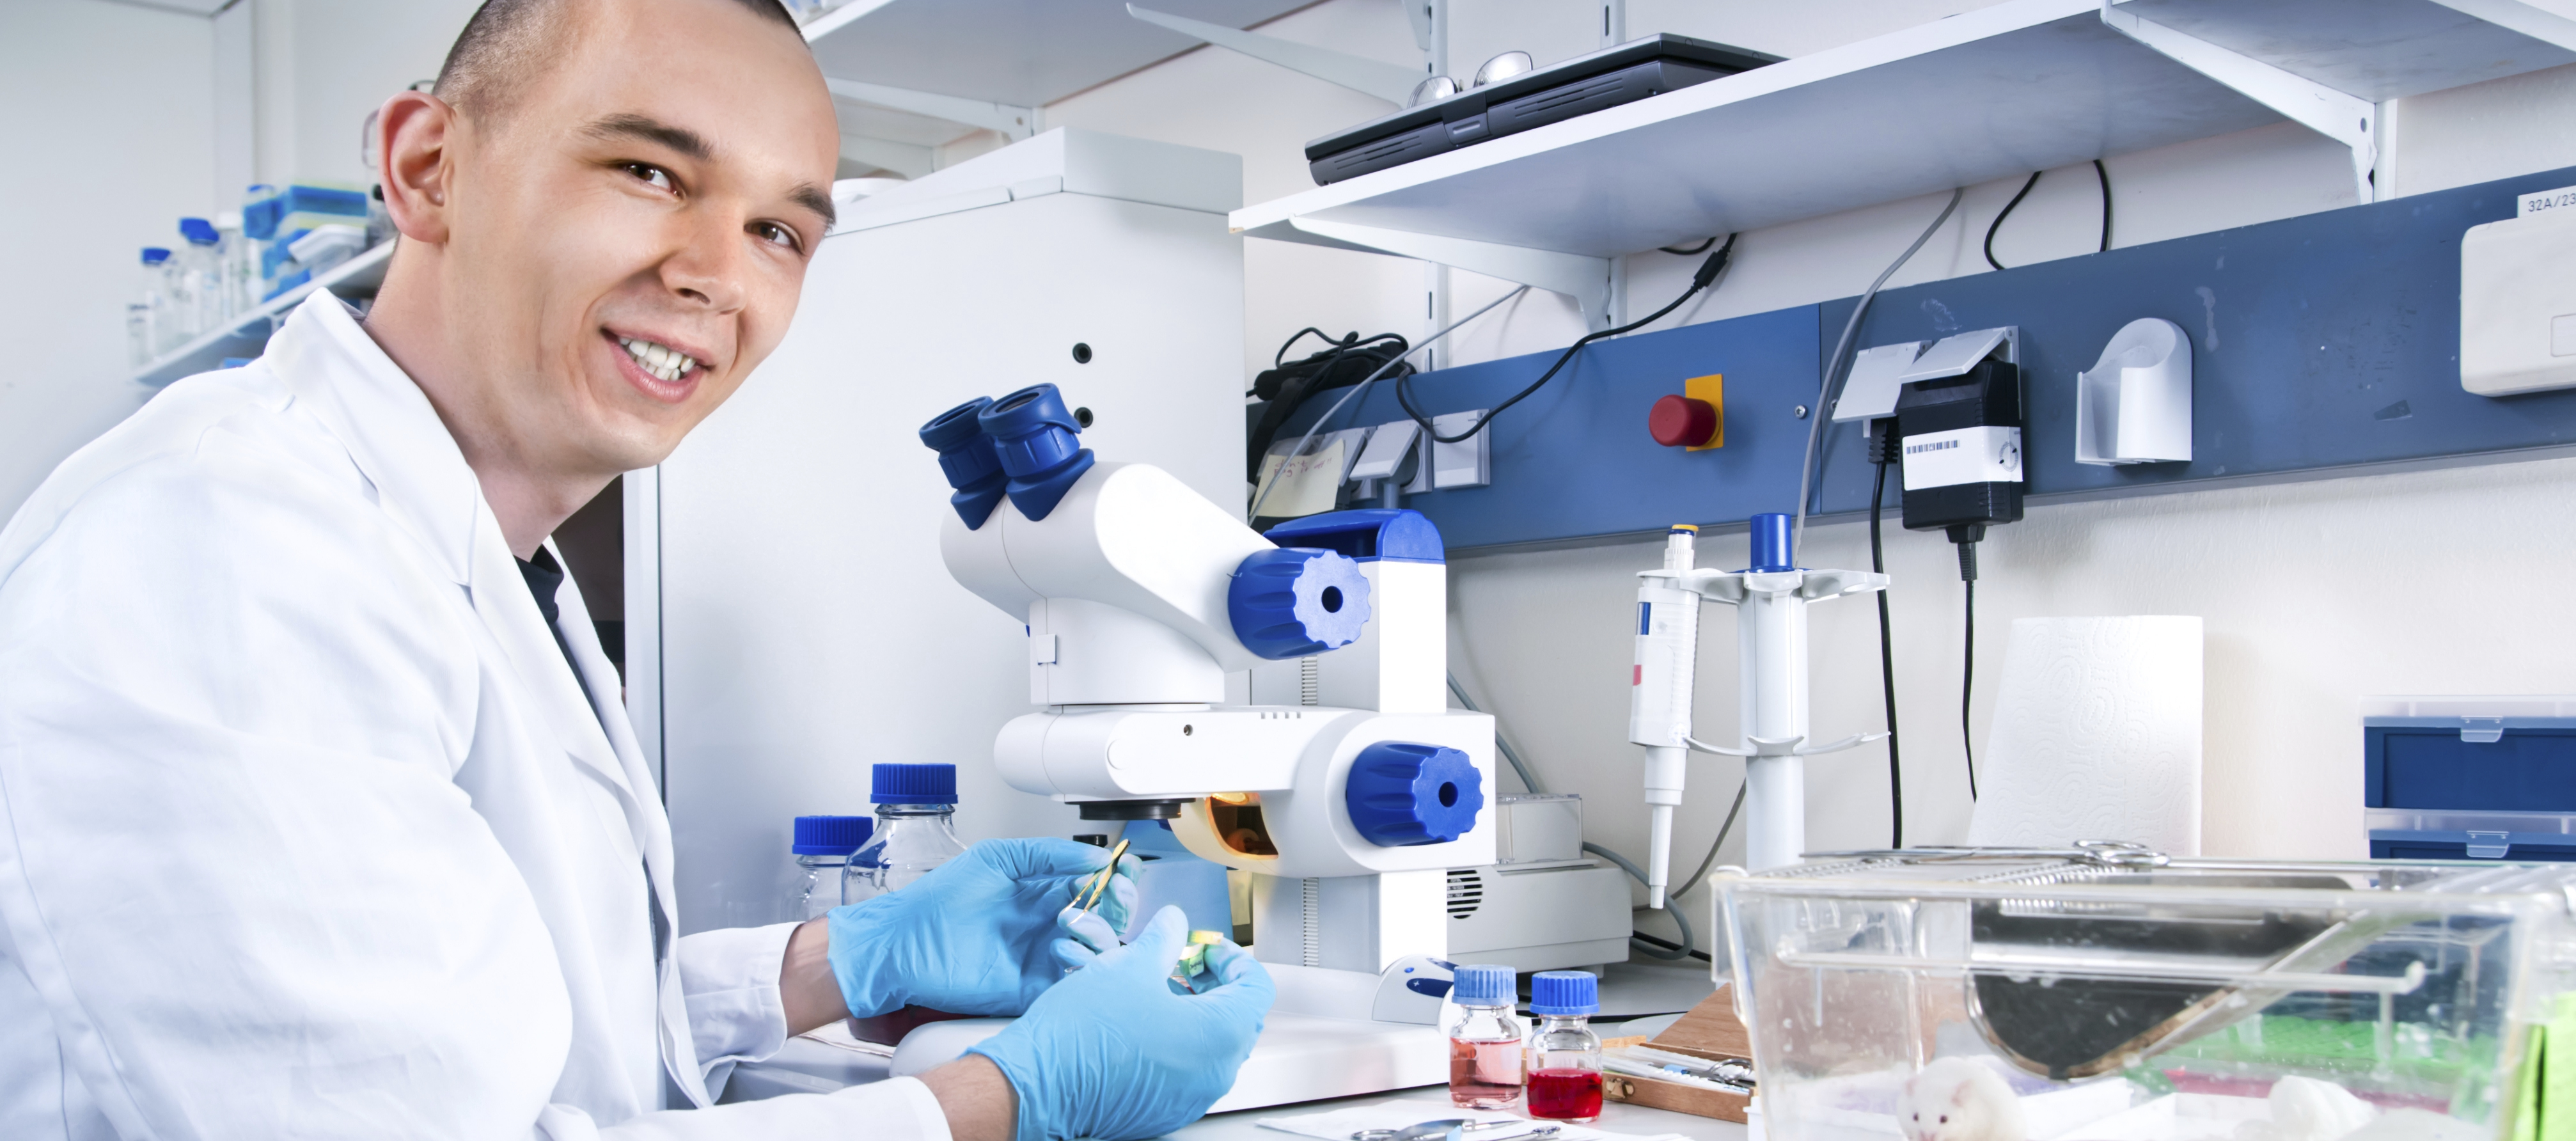 Scientist works with lab mice